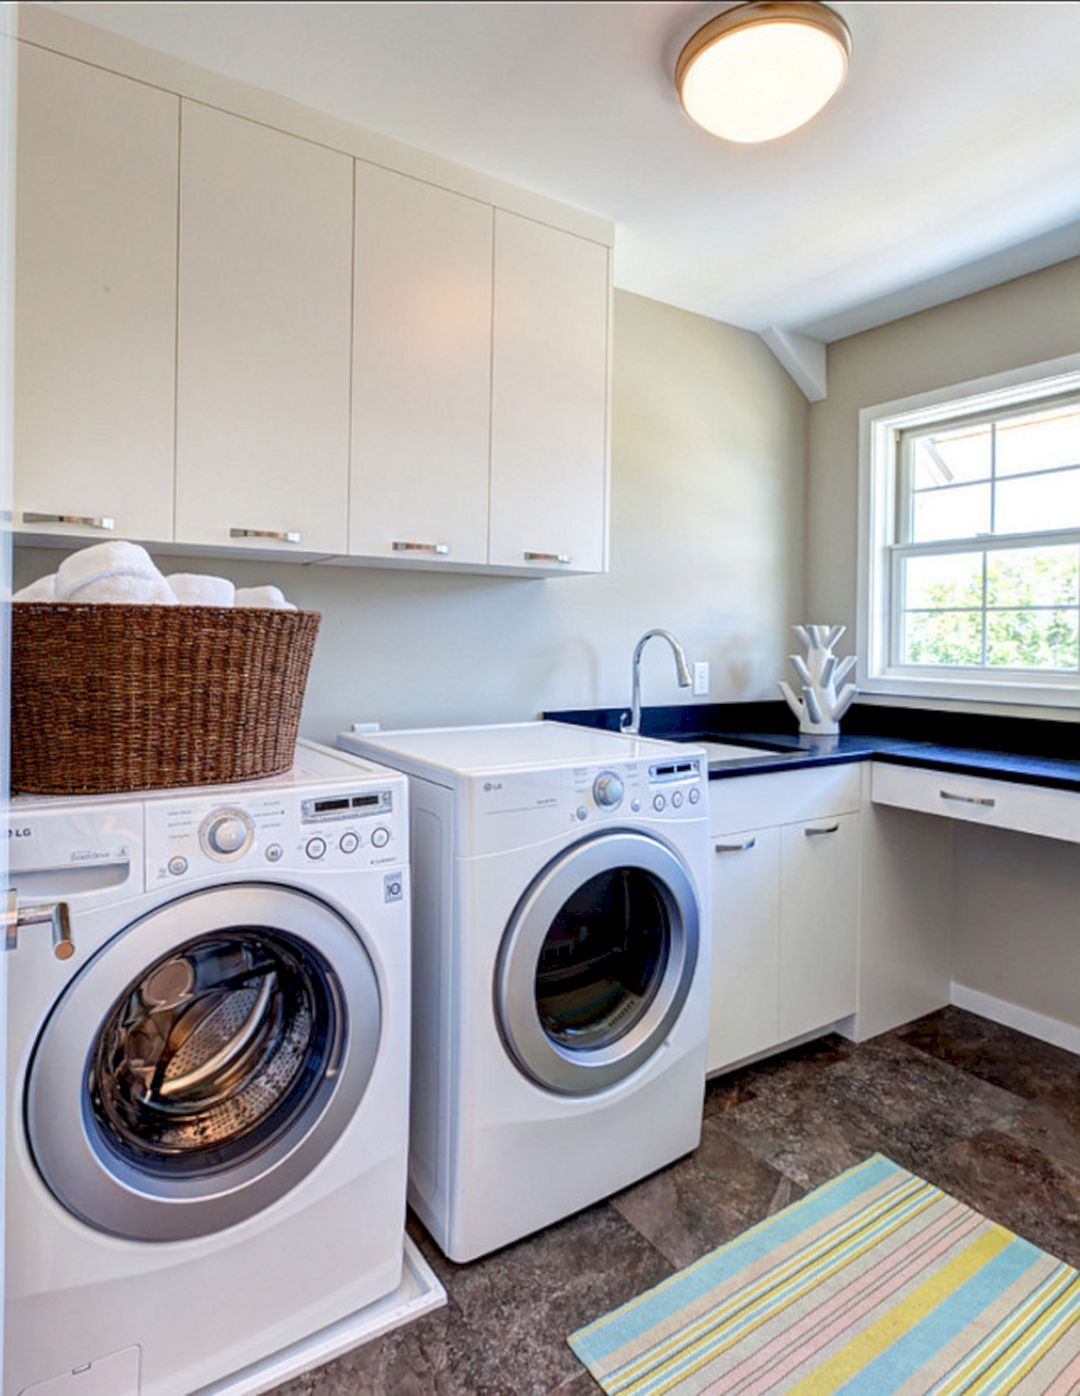 15 modern laundry room decoration for small space ideas on extraordinary small laundry room design and decorating ideas modest laundry space id=38794